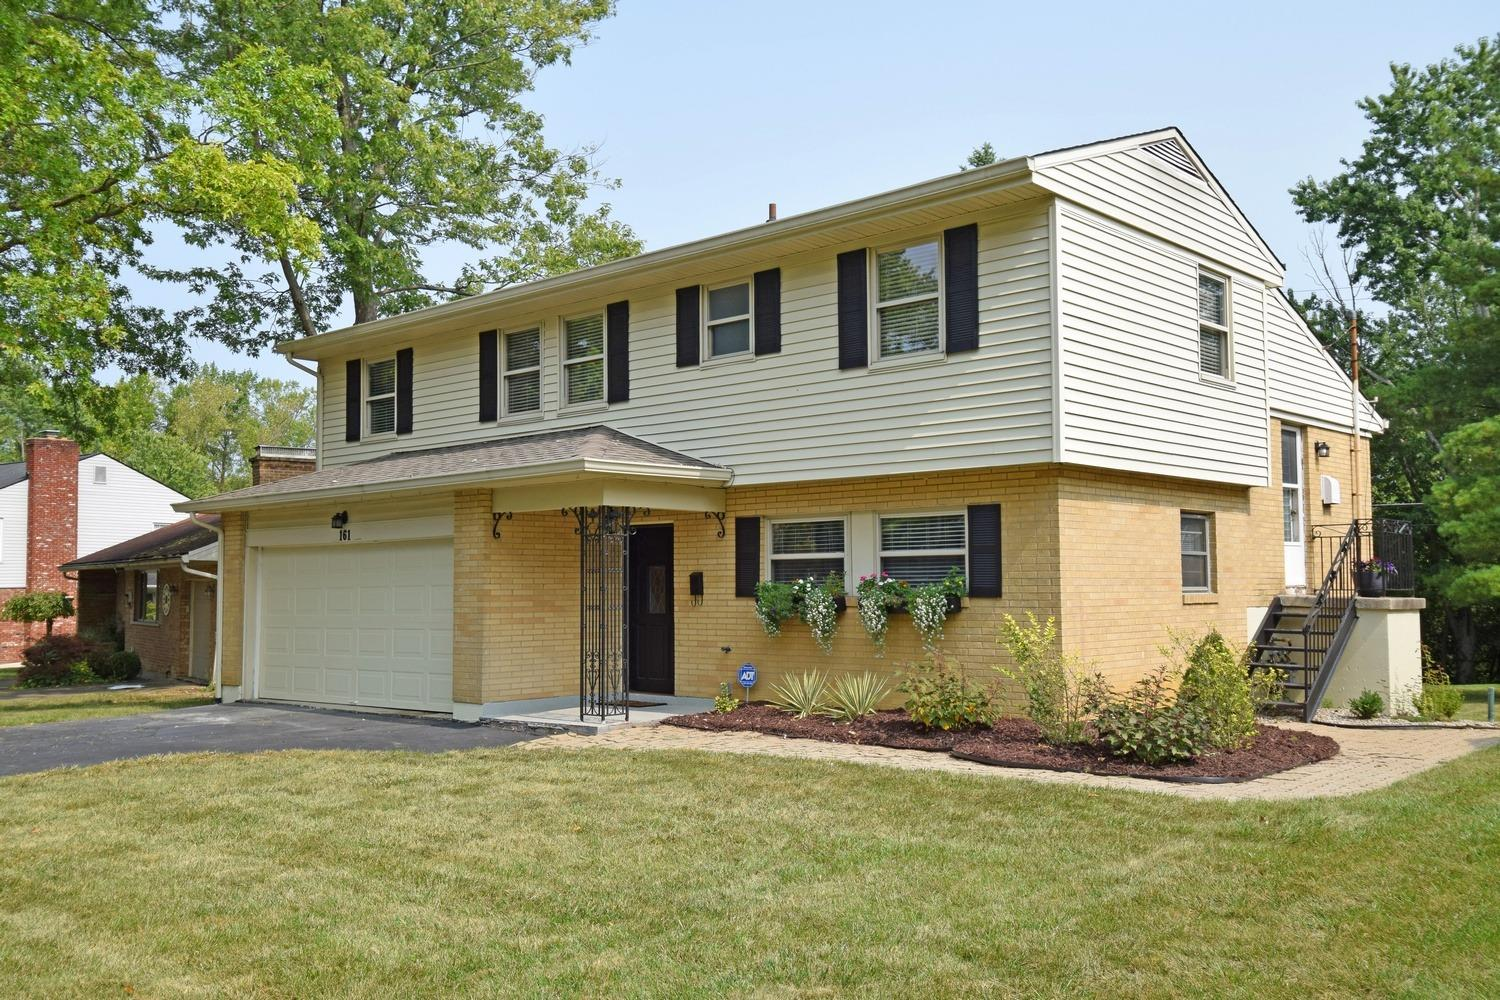 Photo 2 for 161 Junedale Dr Greenhills, OH 45218